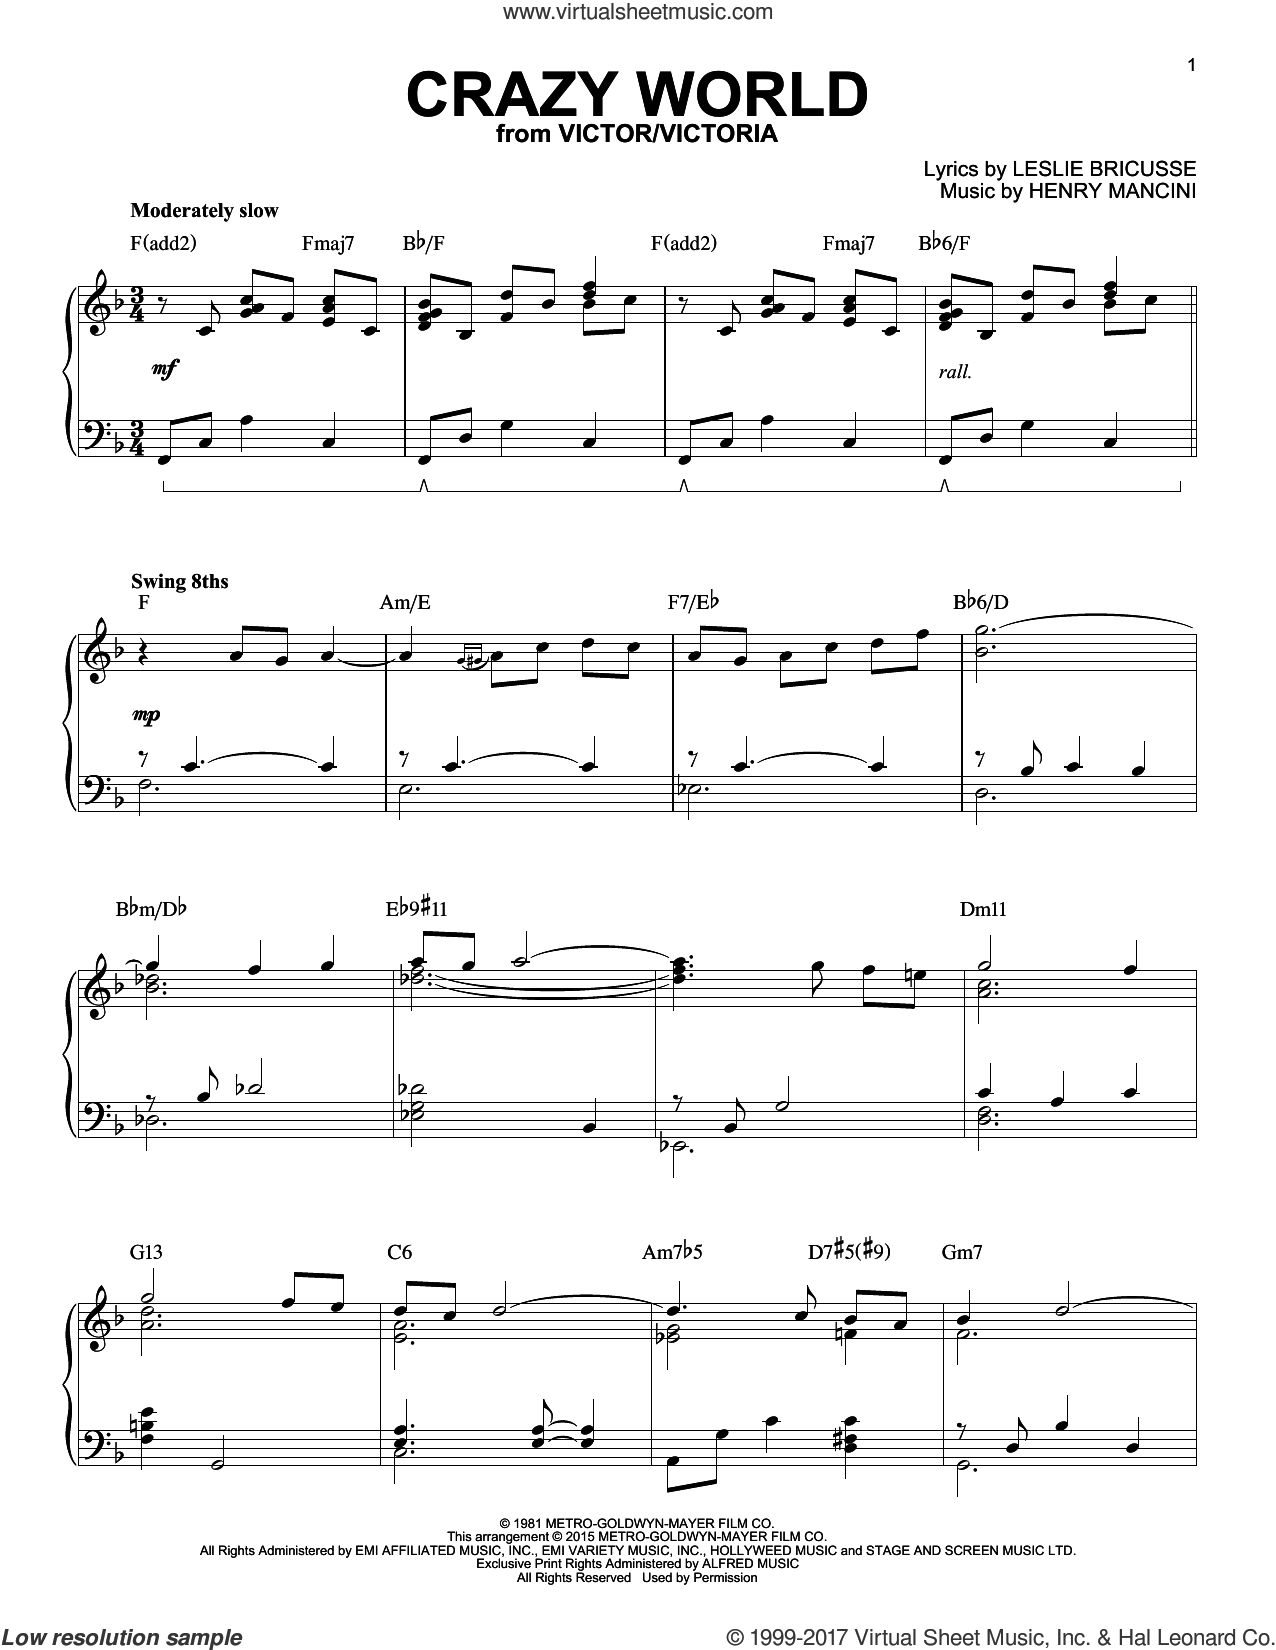 Crazy World [Jazz version] (arr. Brent Edstrom) sheet music for piano solo by Henry Mancini and Leslie Bricusse, intermediate skill level